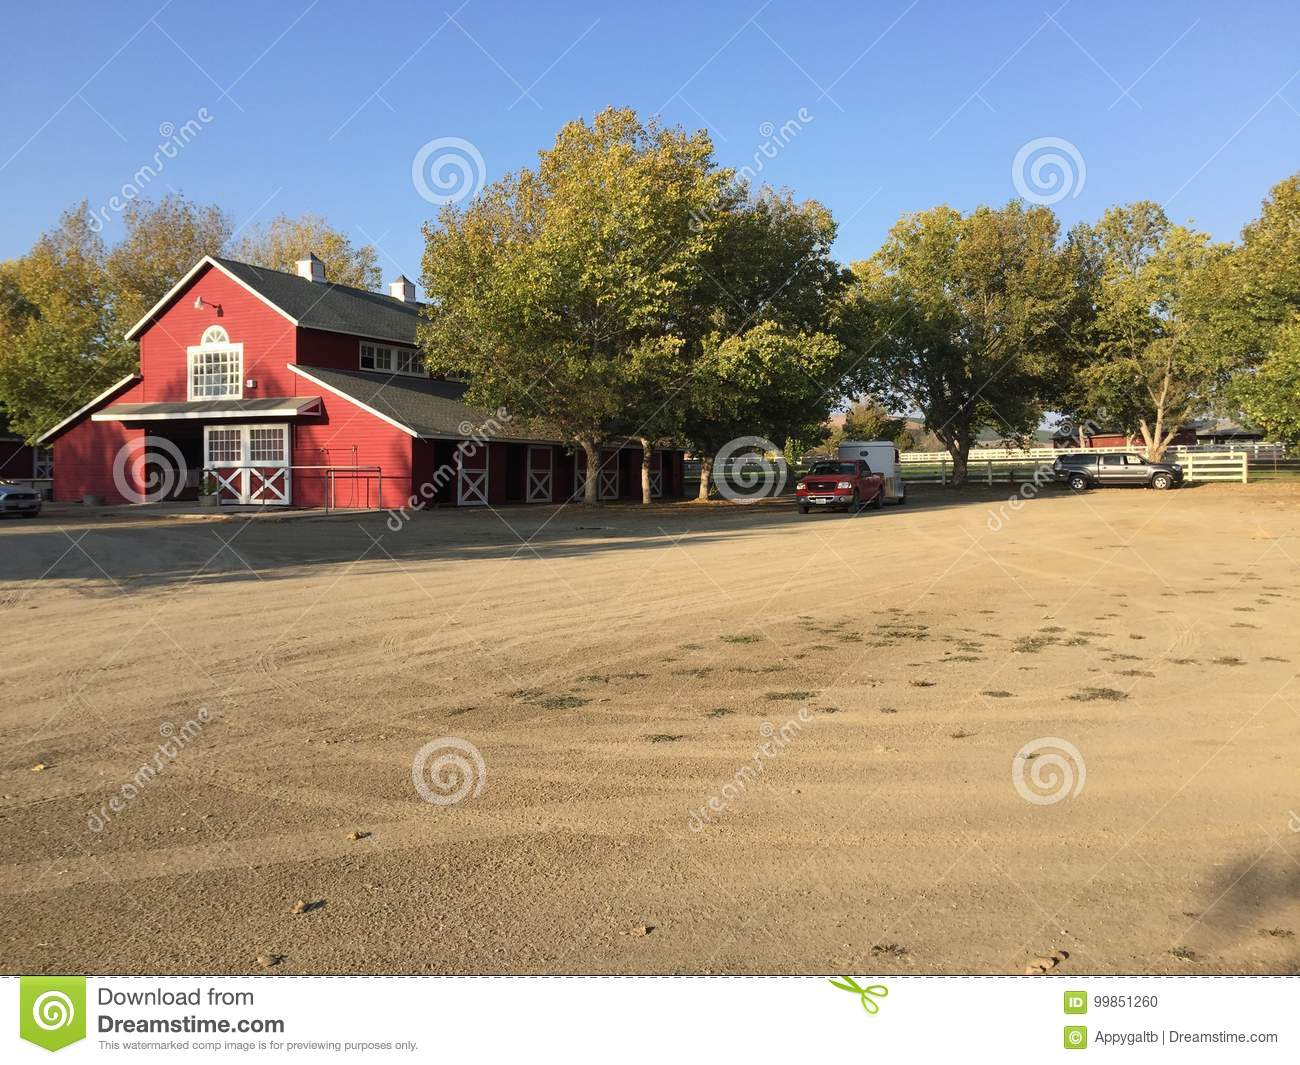 High Star Farms Los Alamos California Stock Photo Image Of Barns